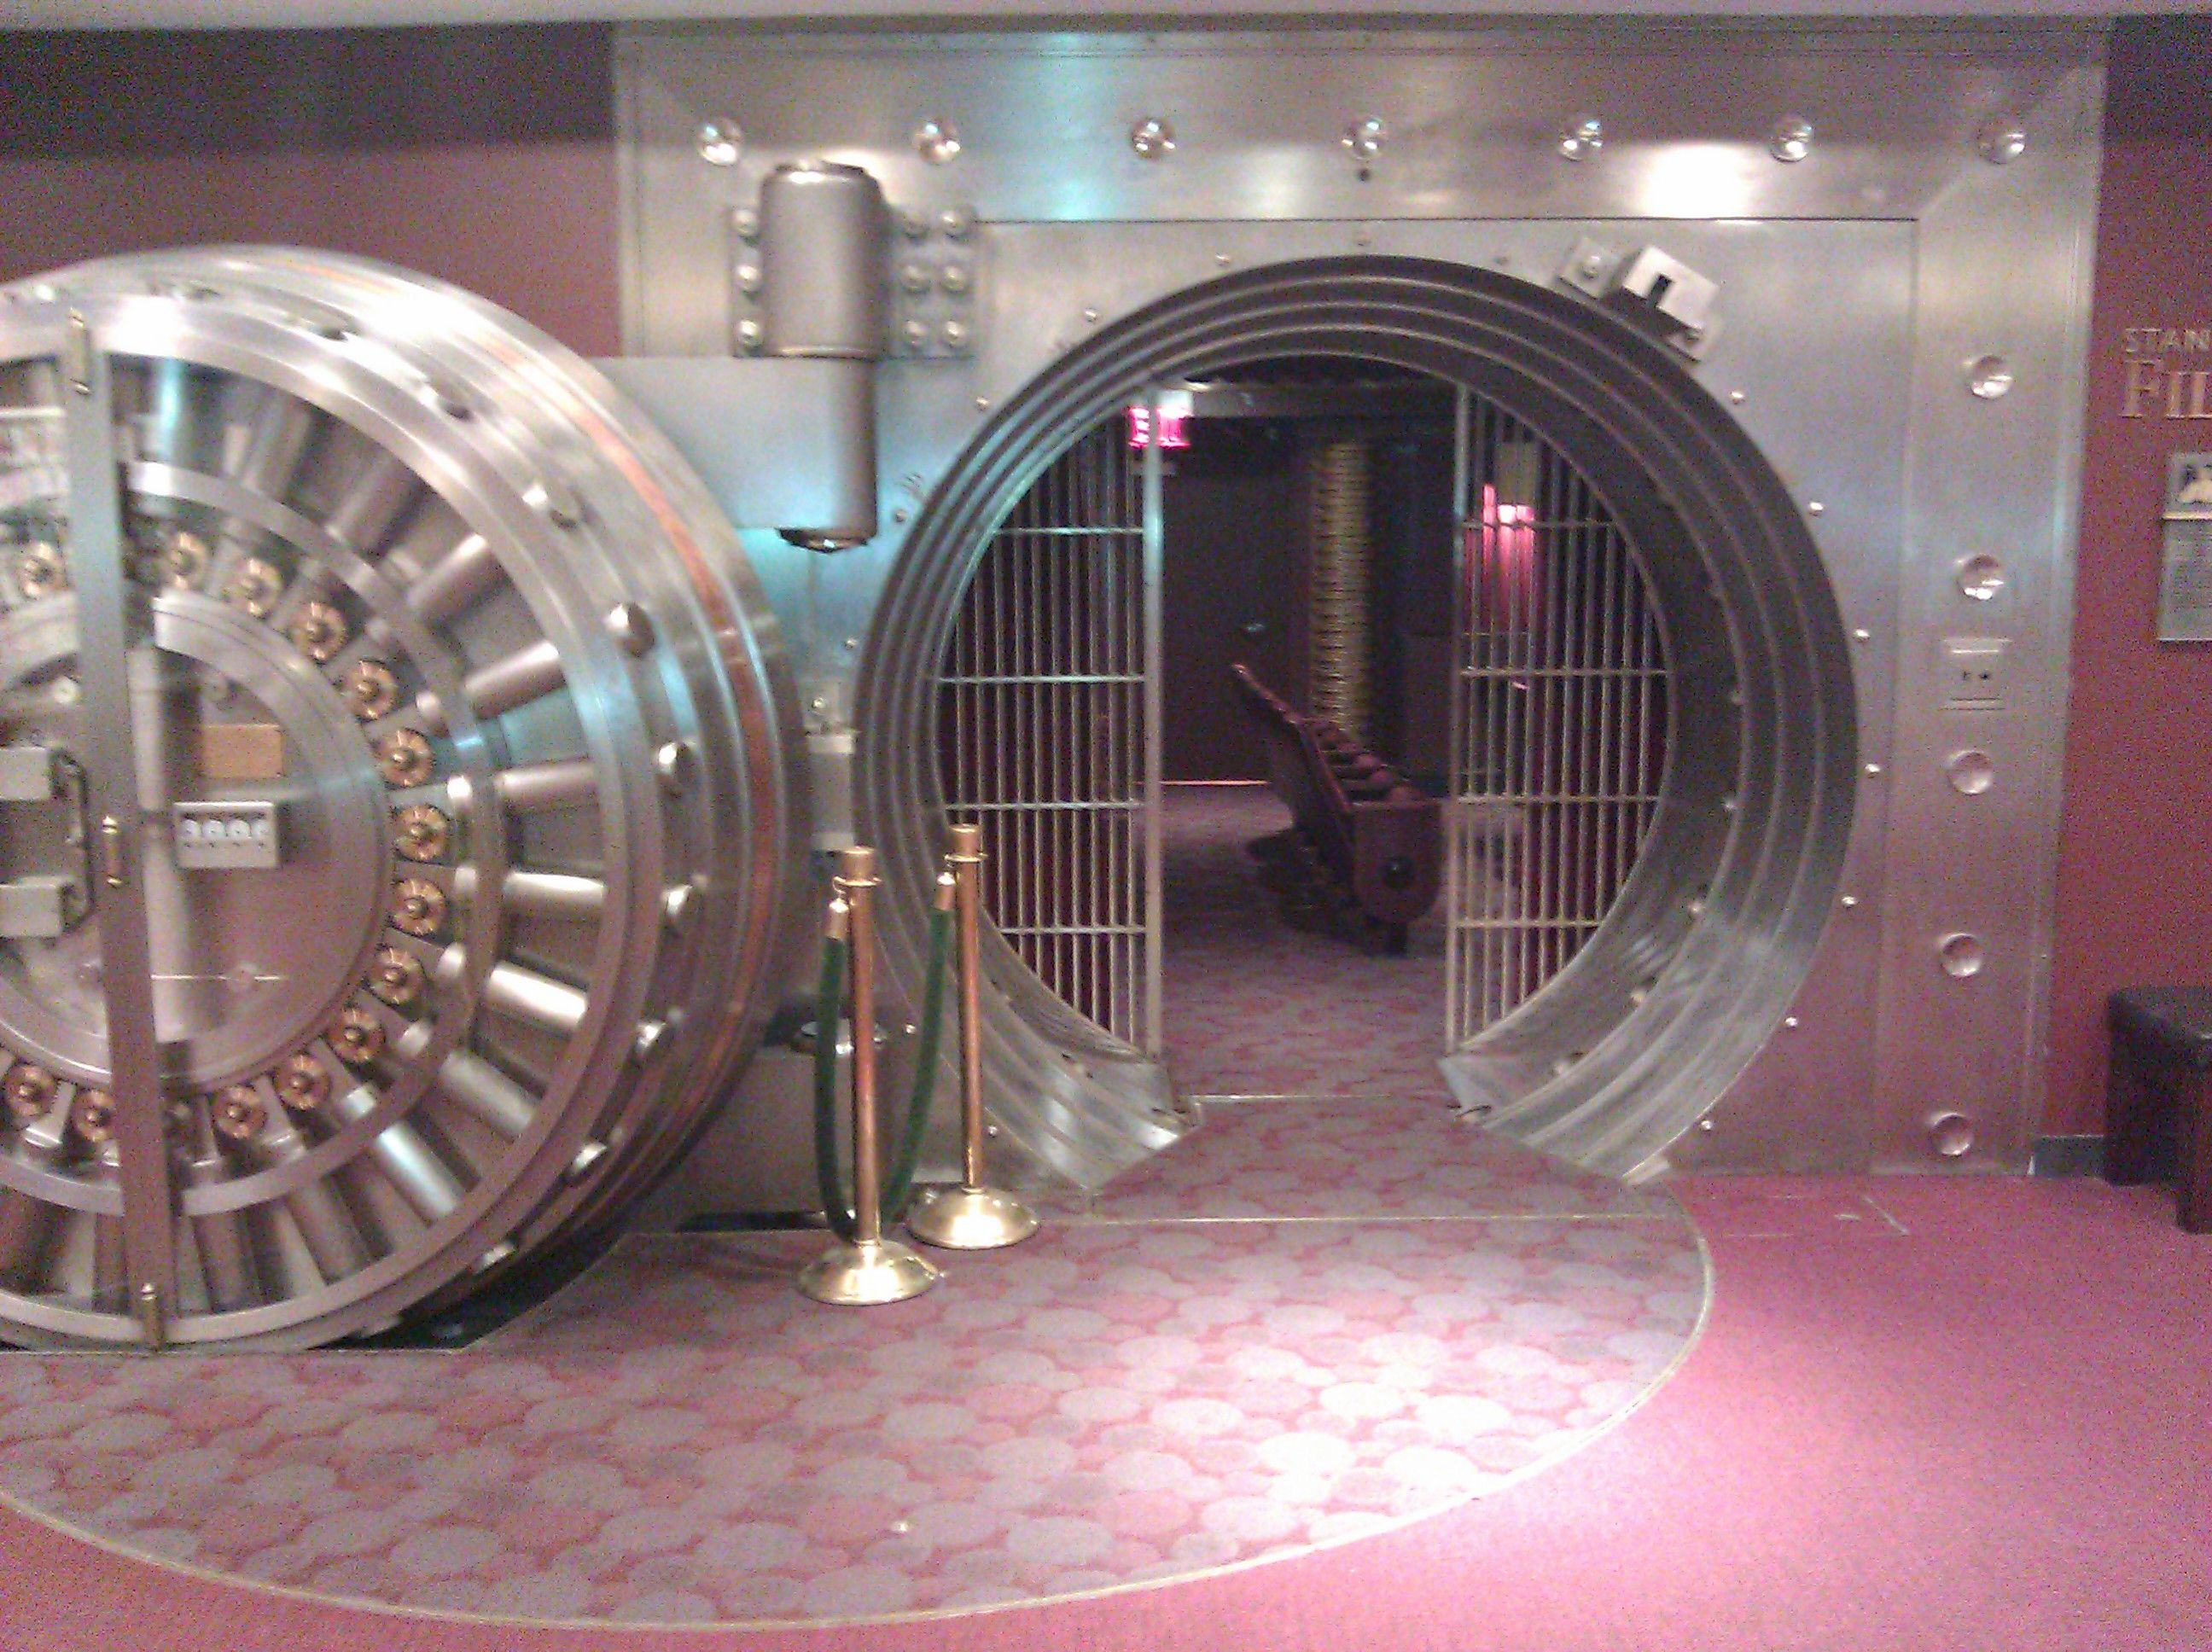 Kansas City Public Library Movie Theater In Old Bank Vault Vault Doors Safe Vault Antique Safe